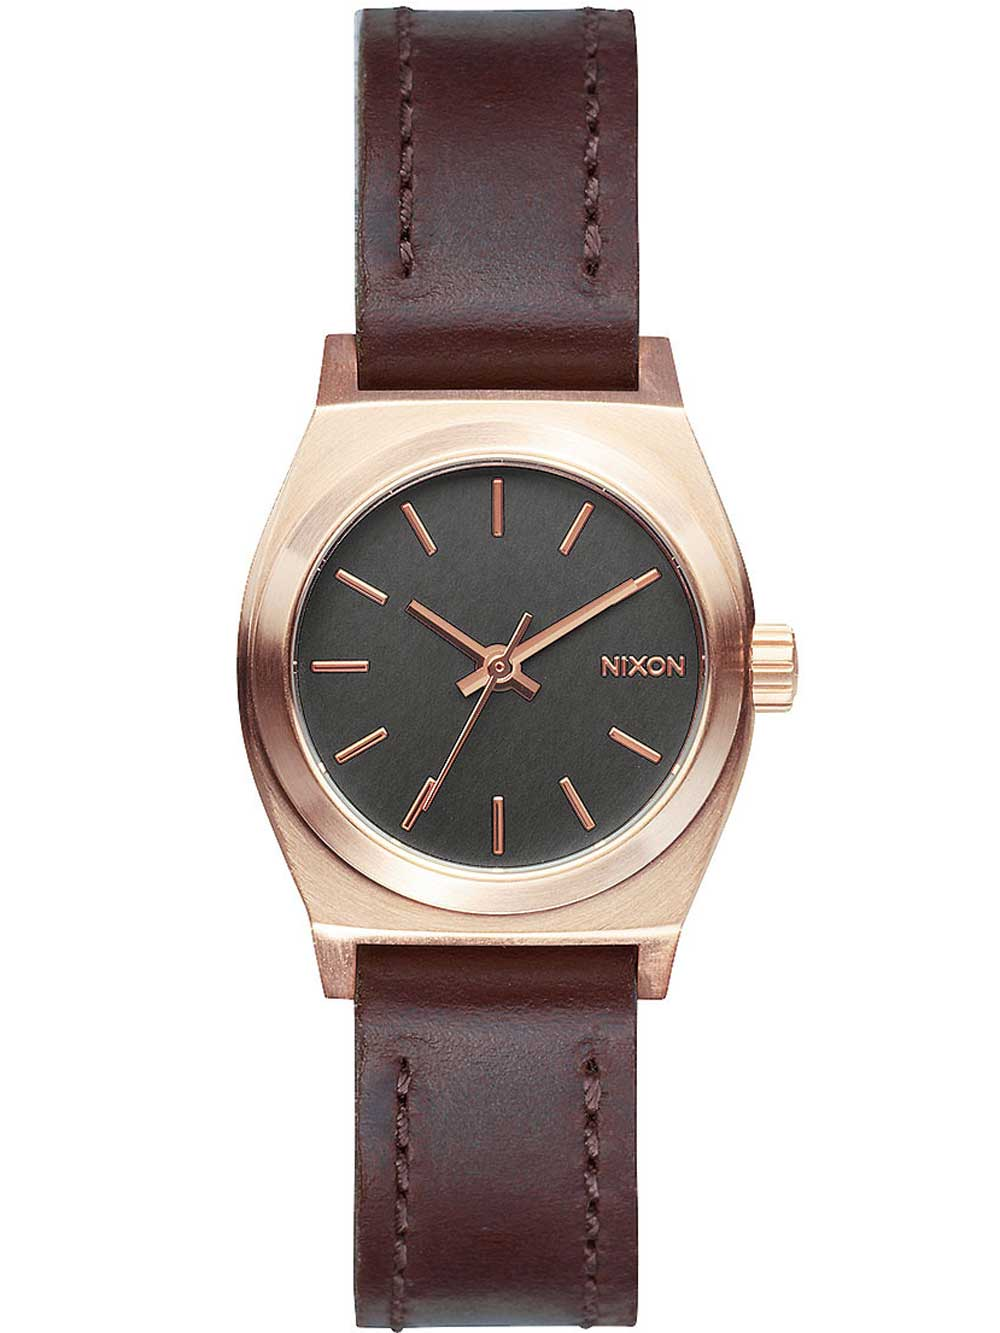 NIXON A509-2001 Small Time Teller Leather Rose Gold Gunmetal Brown 26mm 10ATM